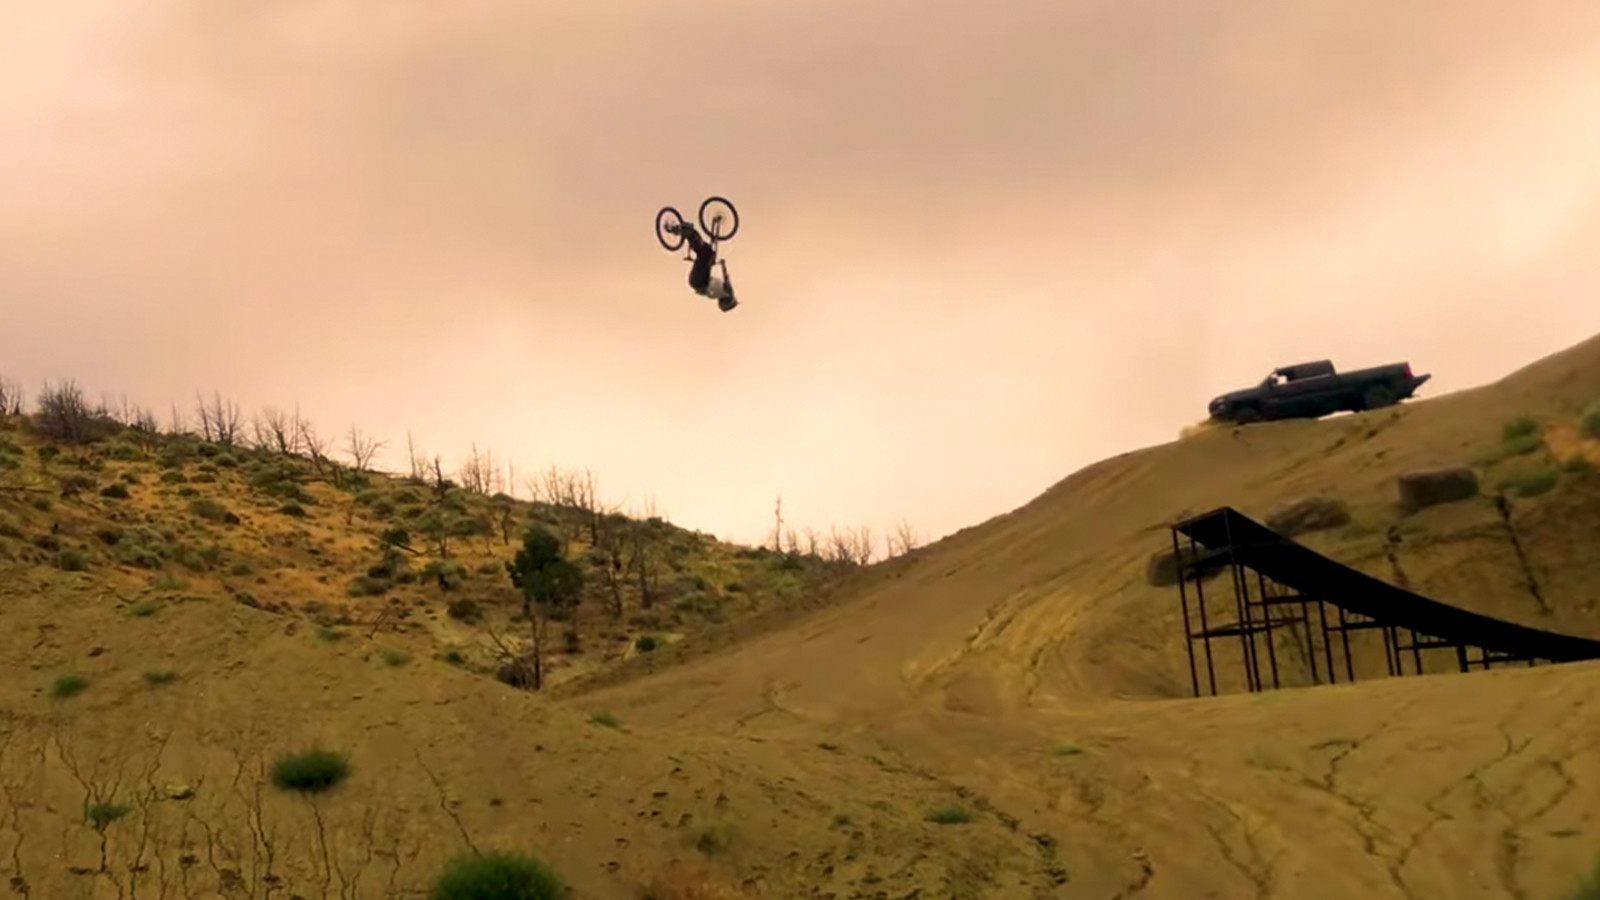 110-foot Backflip? Cam Zink and Clay Porter Make A Recipe for Massive Jumps in Sandbox